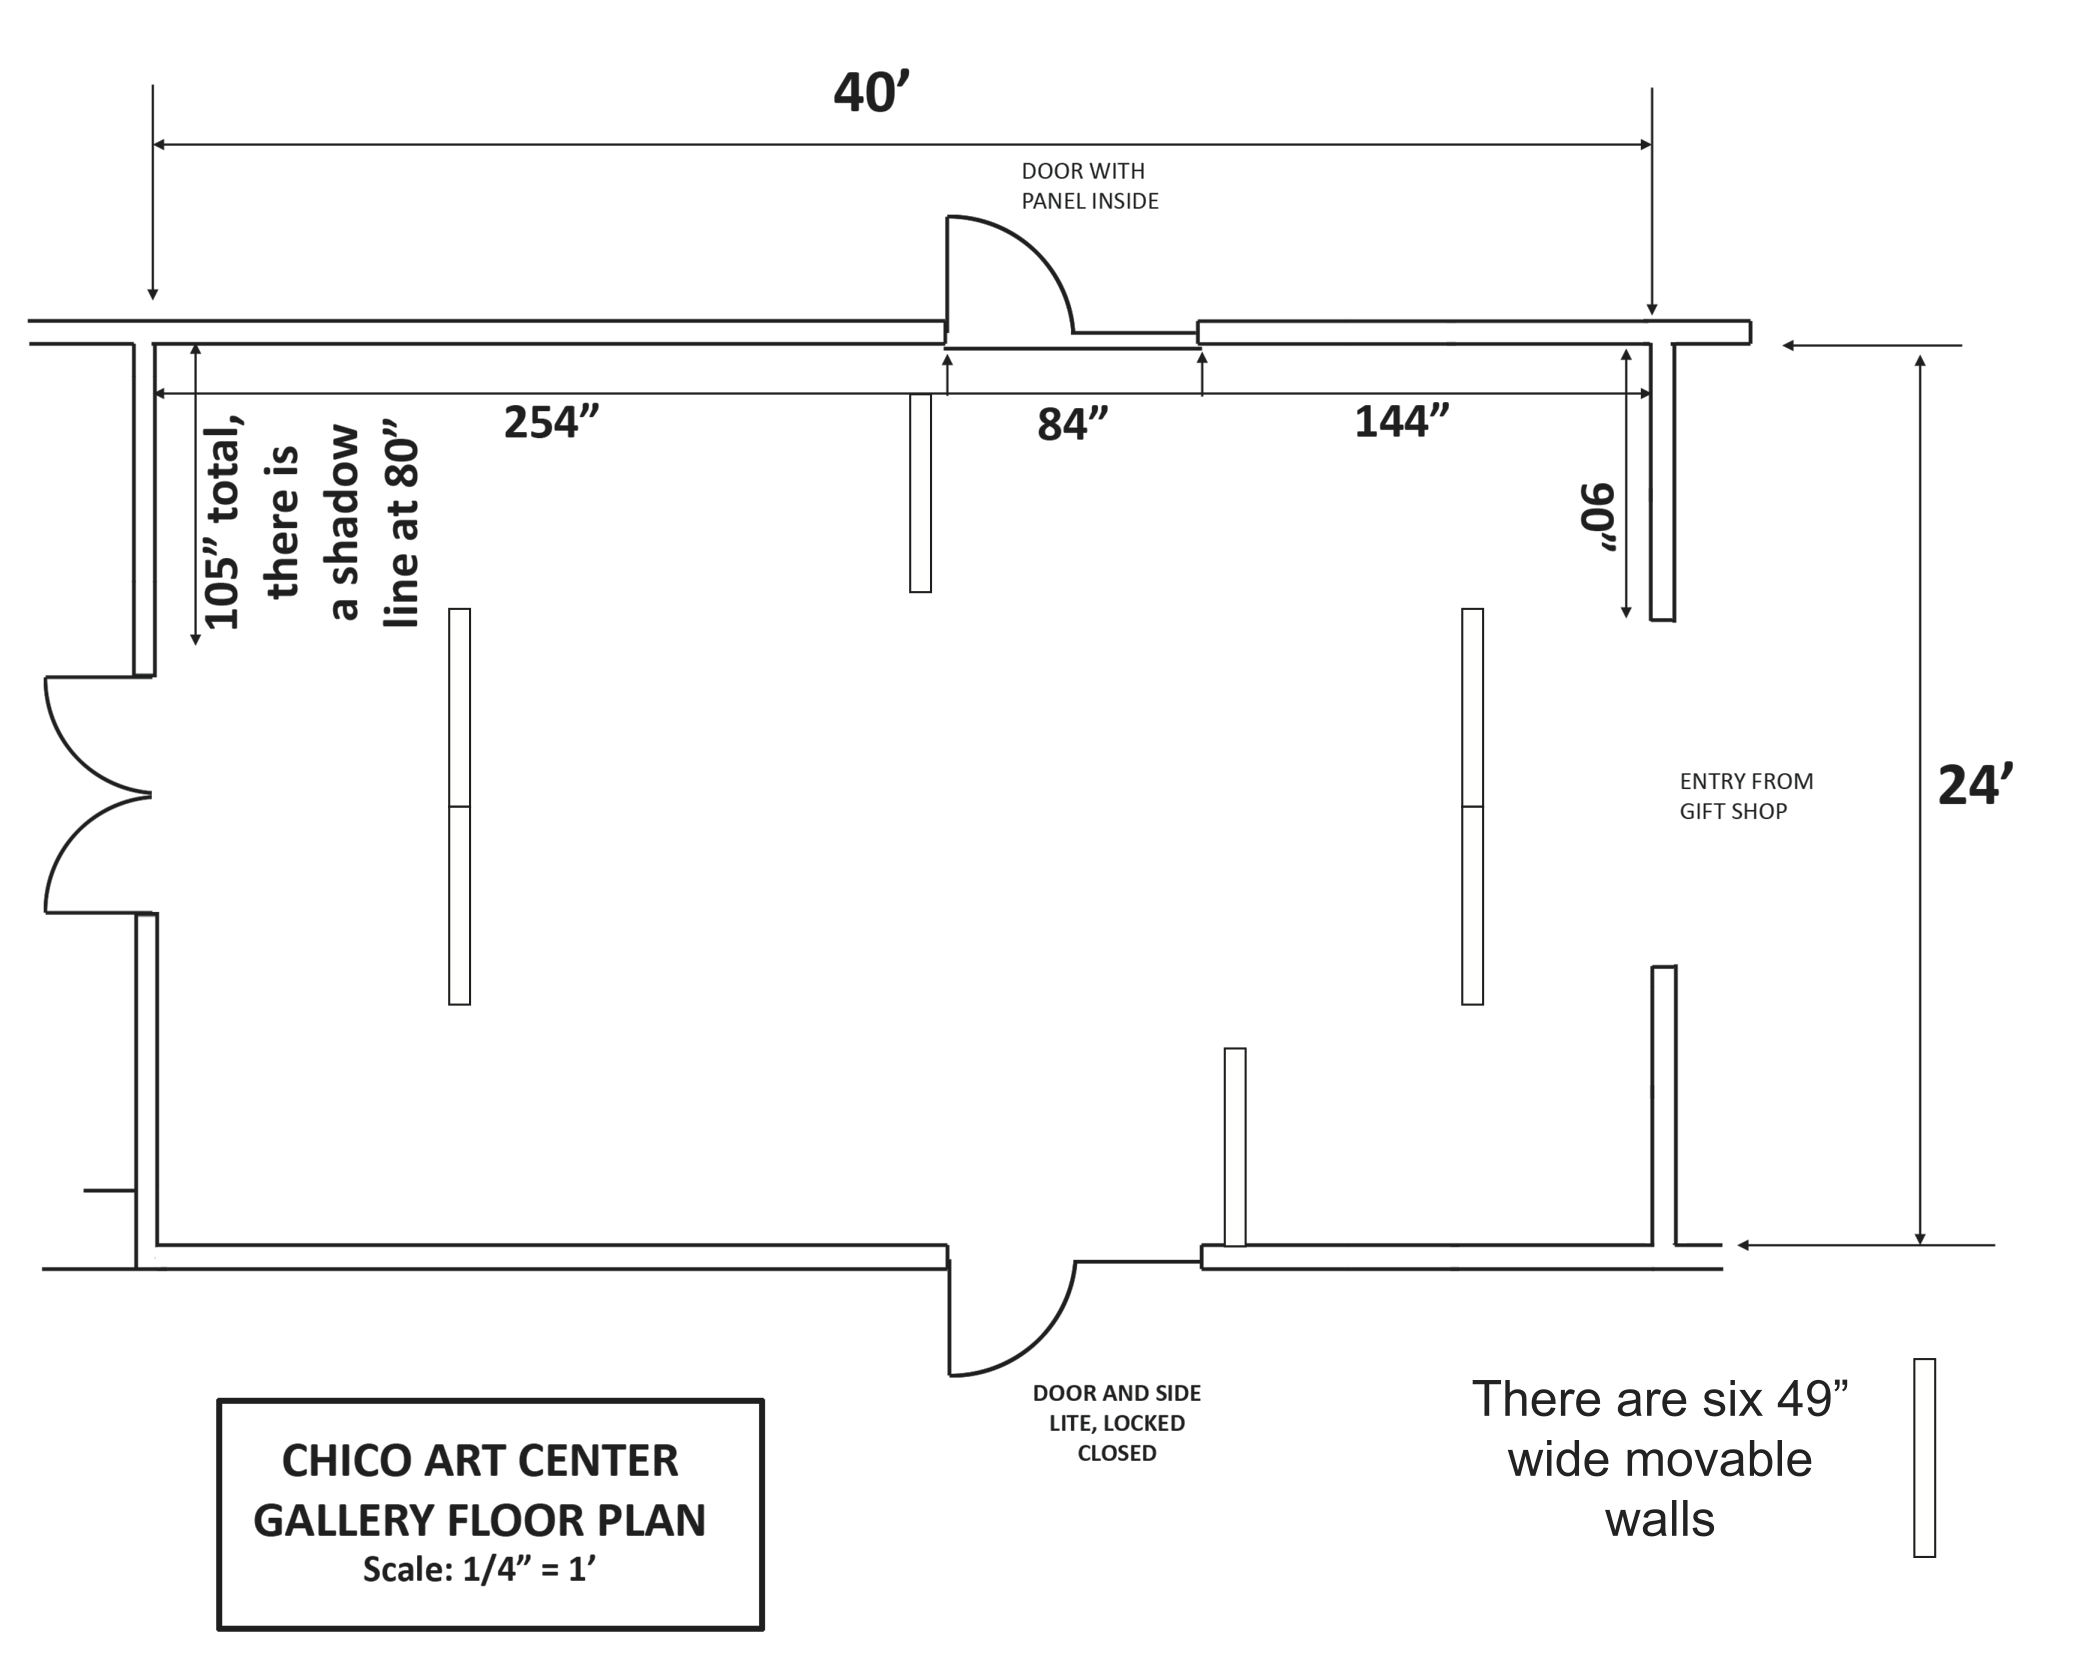 CAC Gallery floor plan qtr in scale